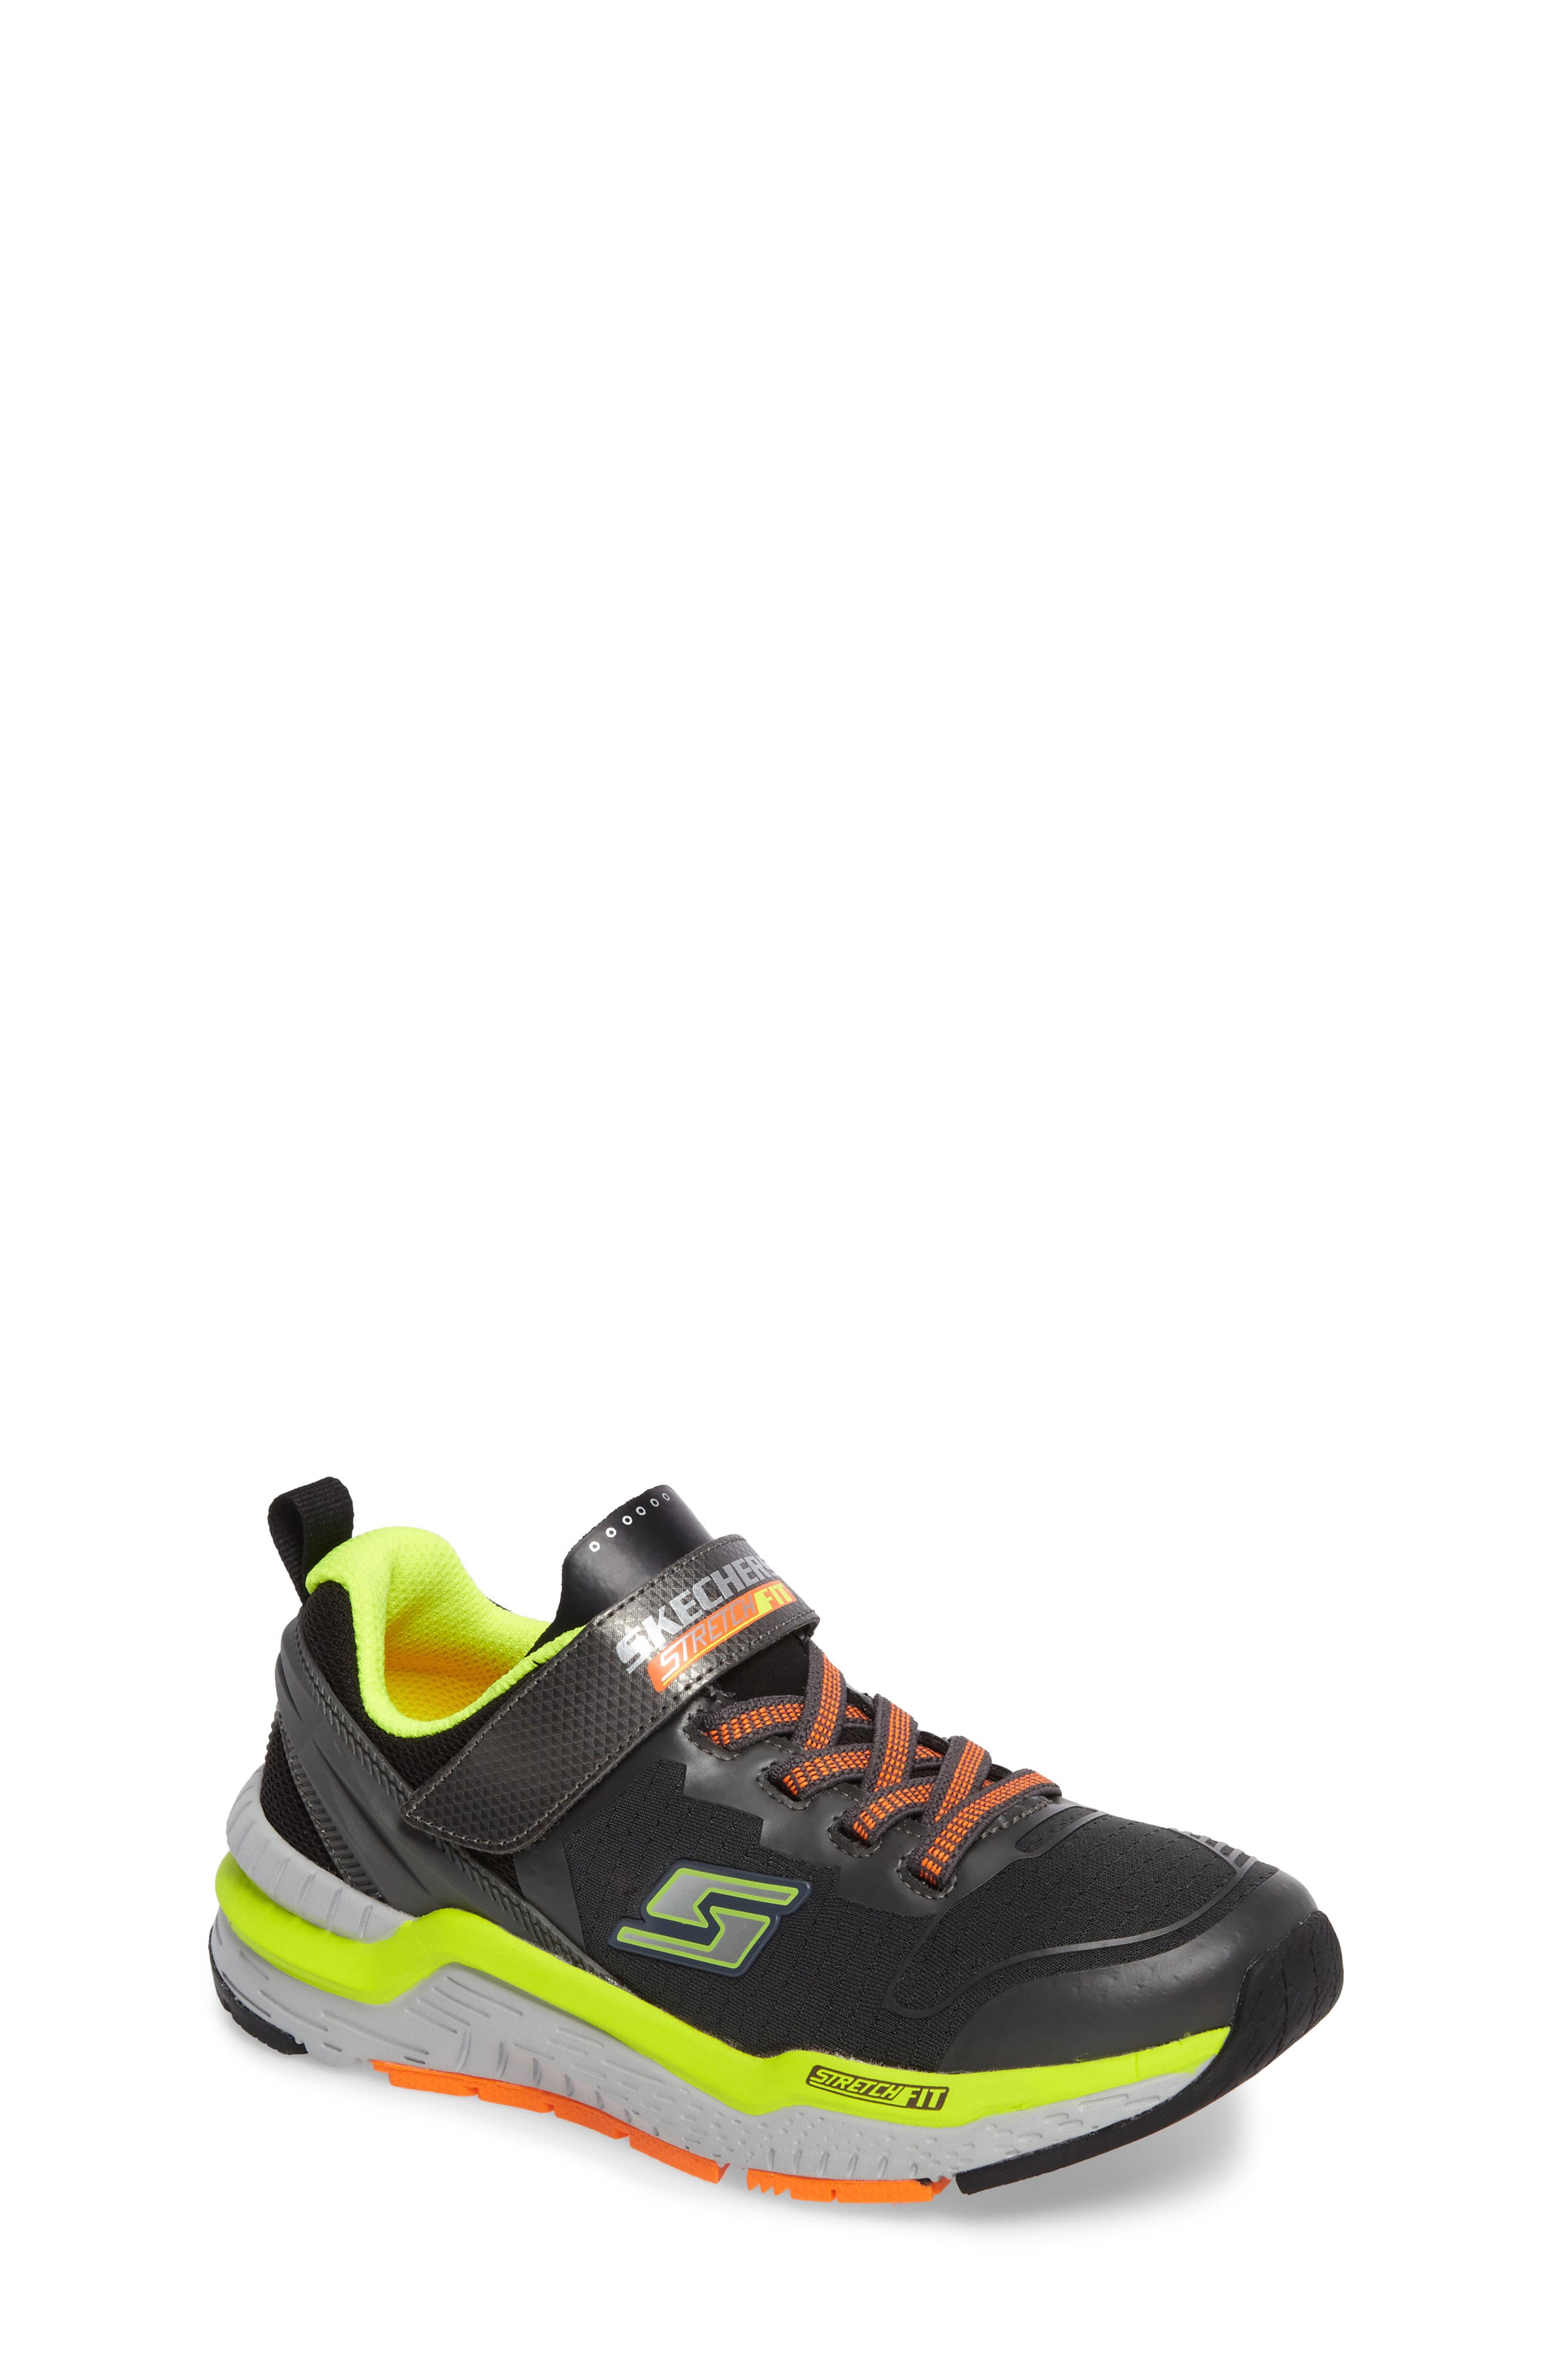 Alternate Image 1 Selected - SKECHERS Hyperjolt Sneaker (Toddler, Little Kid & Big Kid)